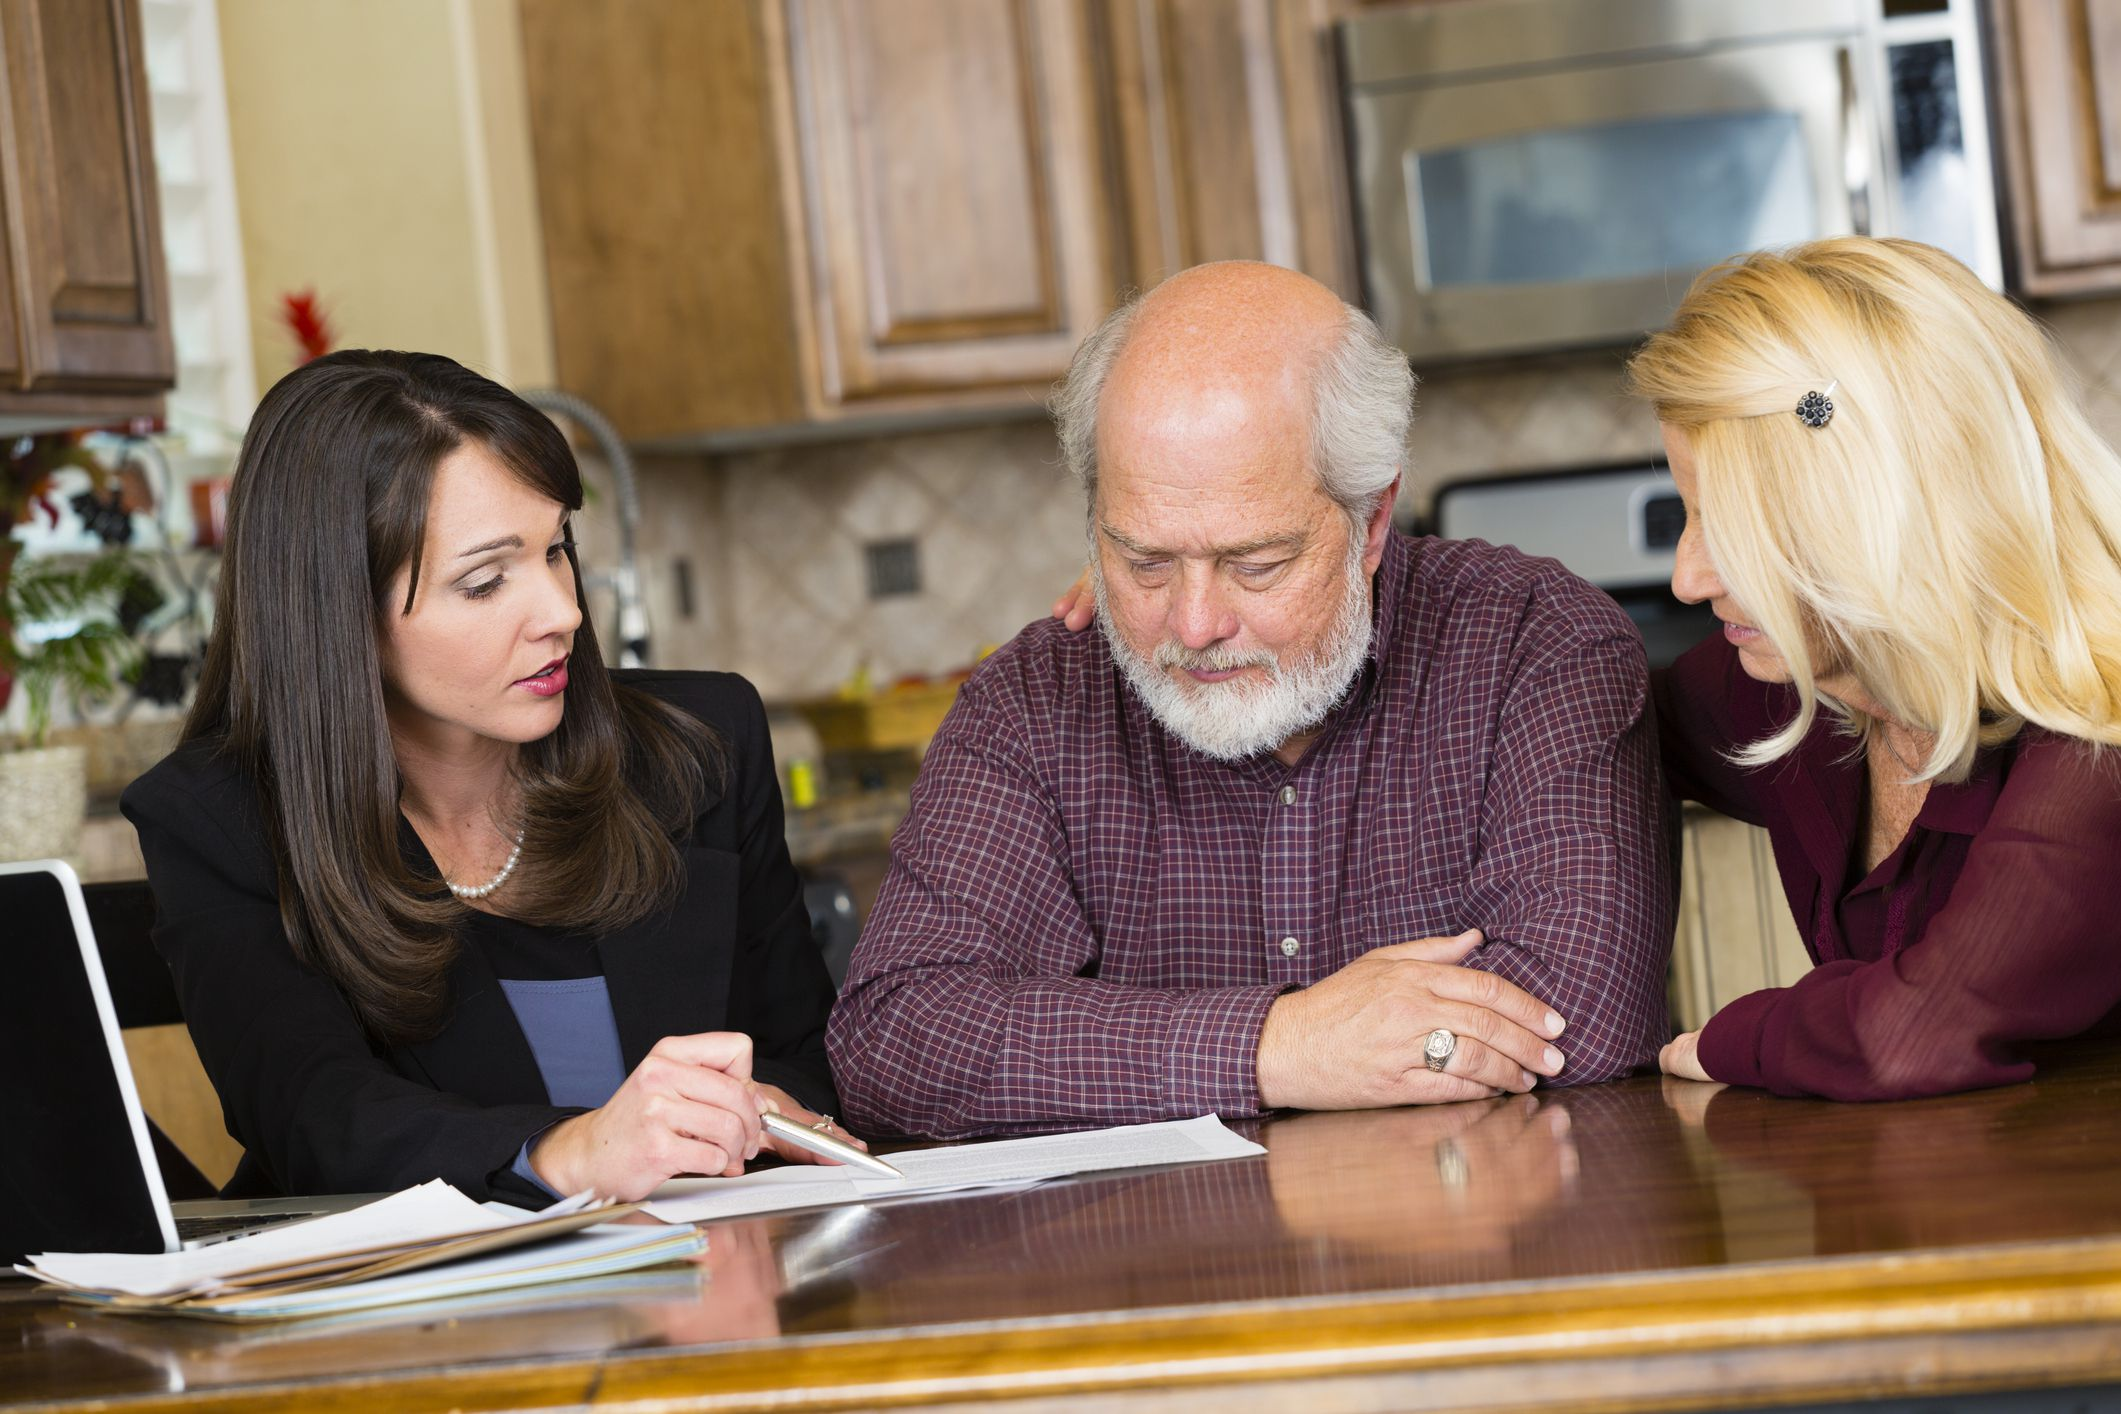 What Does Nursing Home Insurance Cover and How Much Does It Cost?